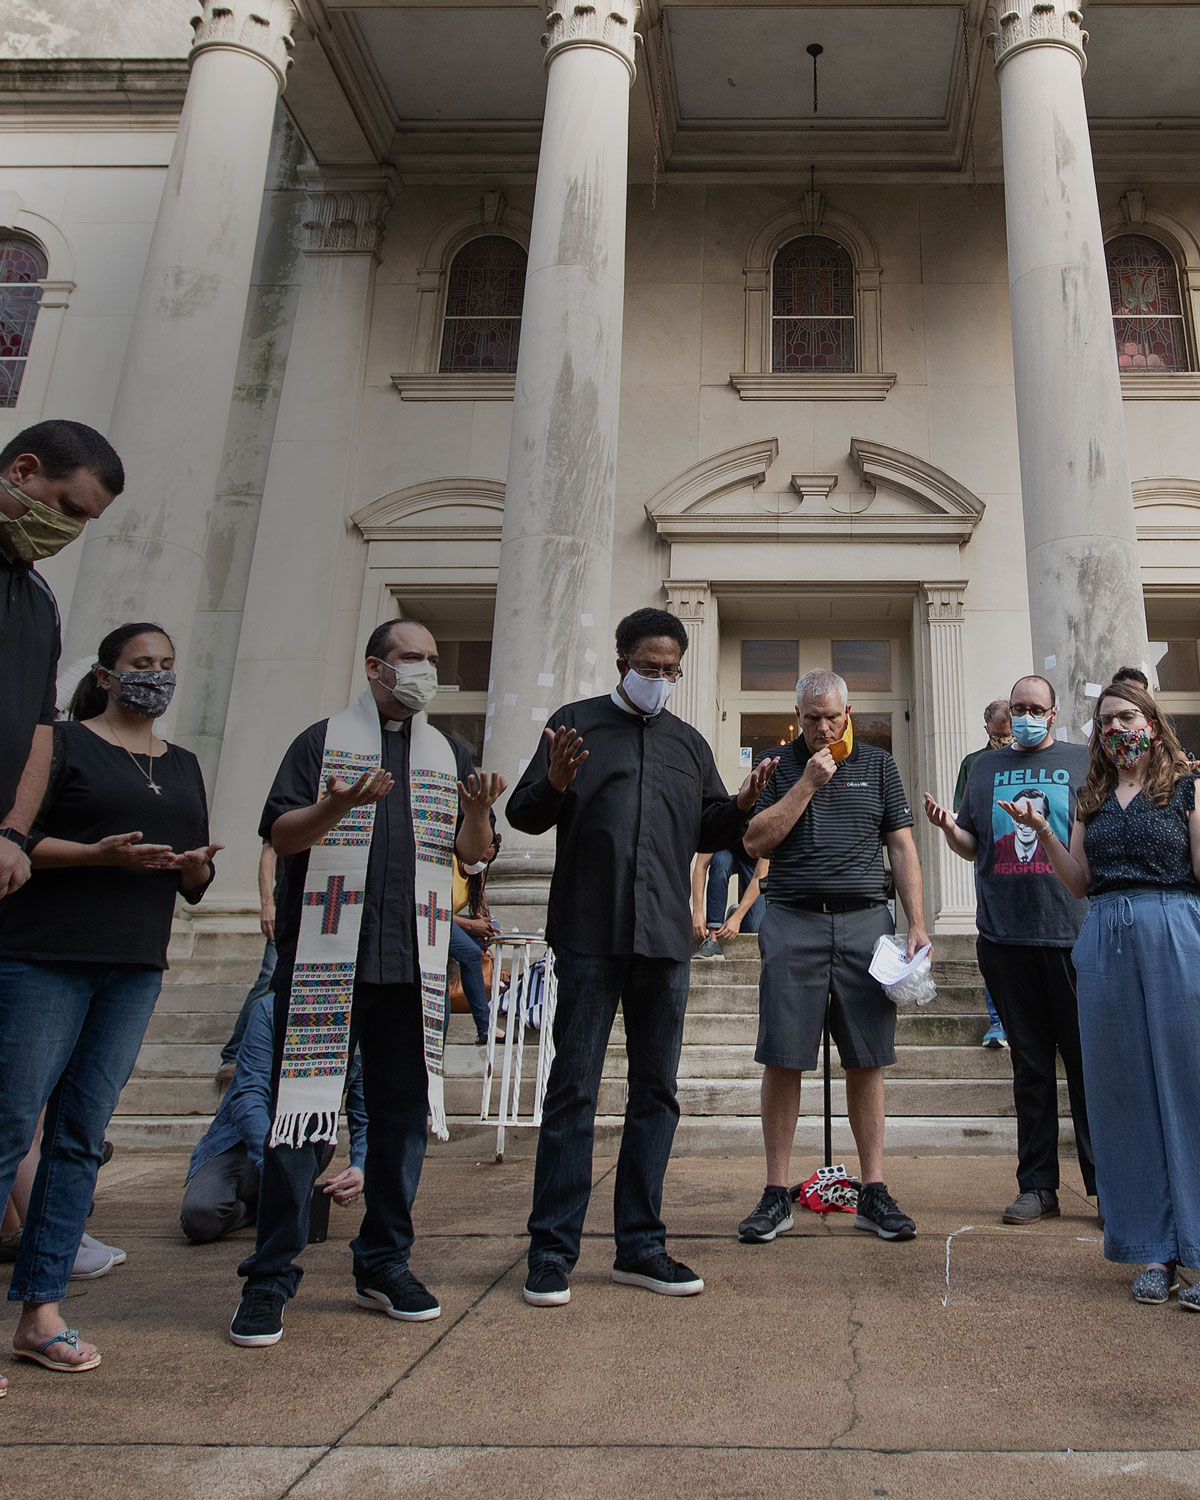 Clergy members gather in prayer during a vigil at McKendree United Methodist Church in Nashville, Tenn., to grieve and remember people lost to acts of racism. Photo by Mike DuBose, UM News.